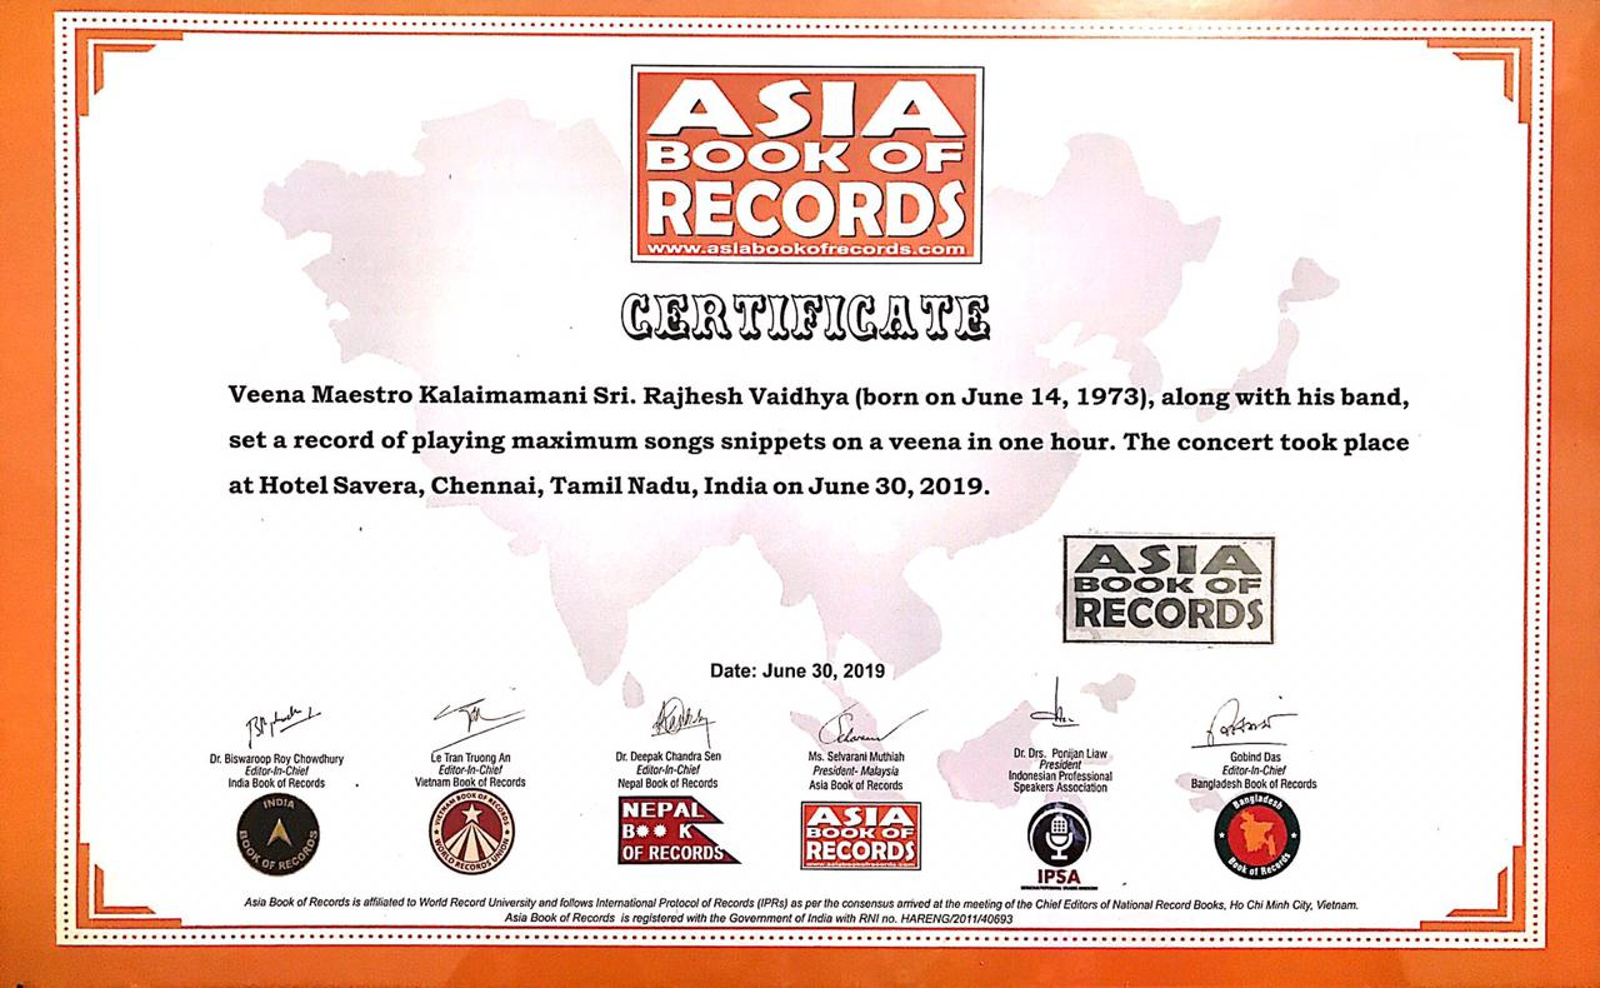 Veena Maestro Kalaimamani Rajhesh Vaidhya enters Asia Books of Records with 60 Song Snippets in Hour Certificate